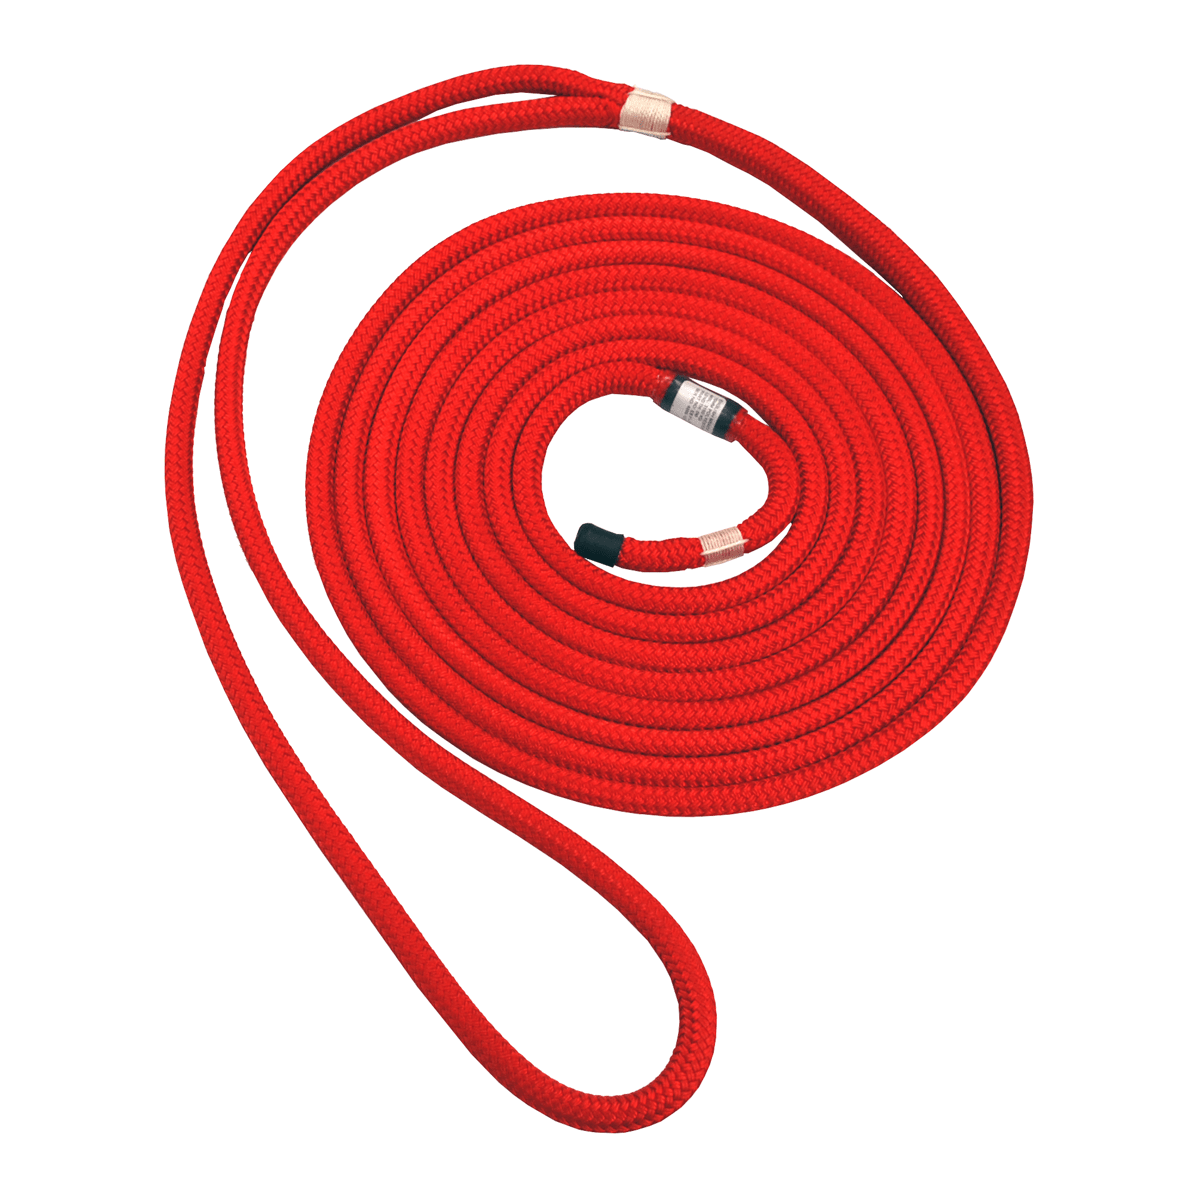 English Braid Alliance Rigging Sling 10mm 5.0m (RED) 50cm Eye